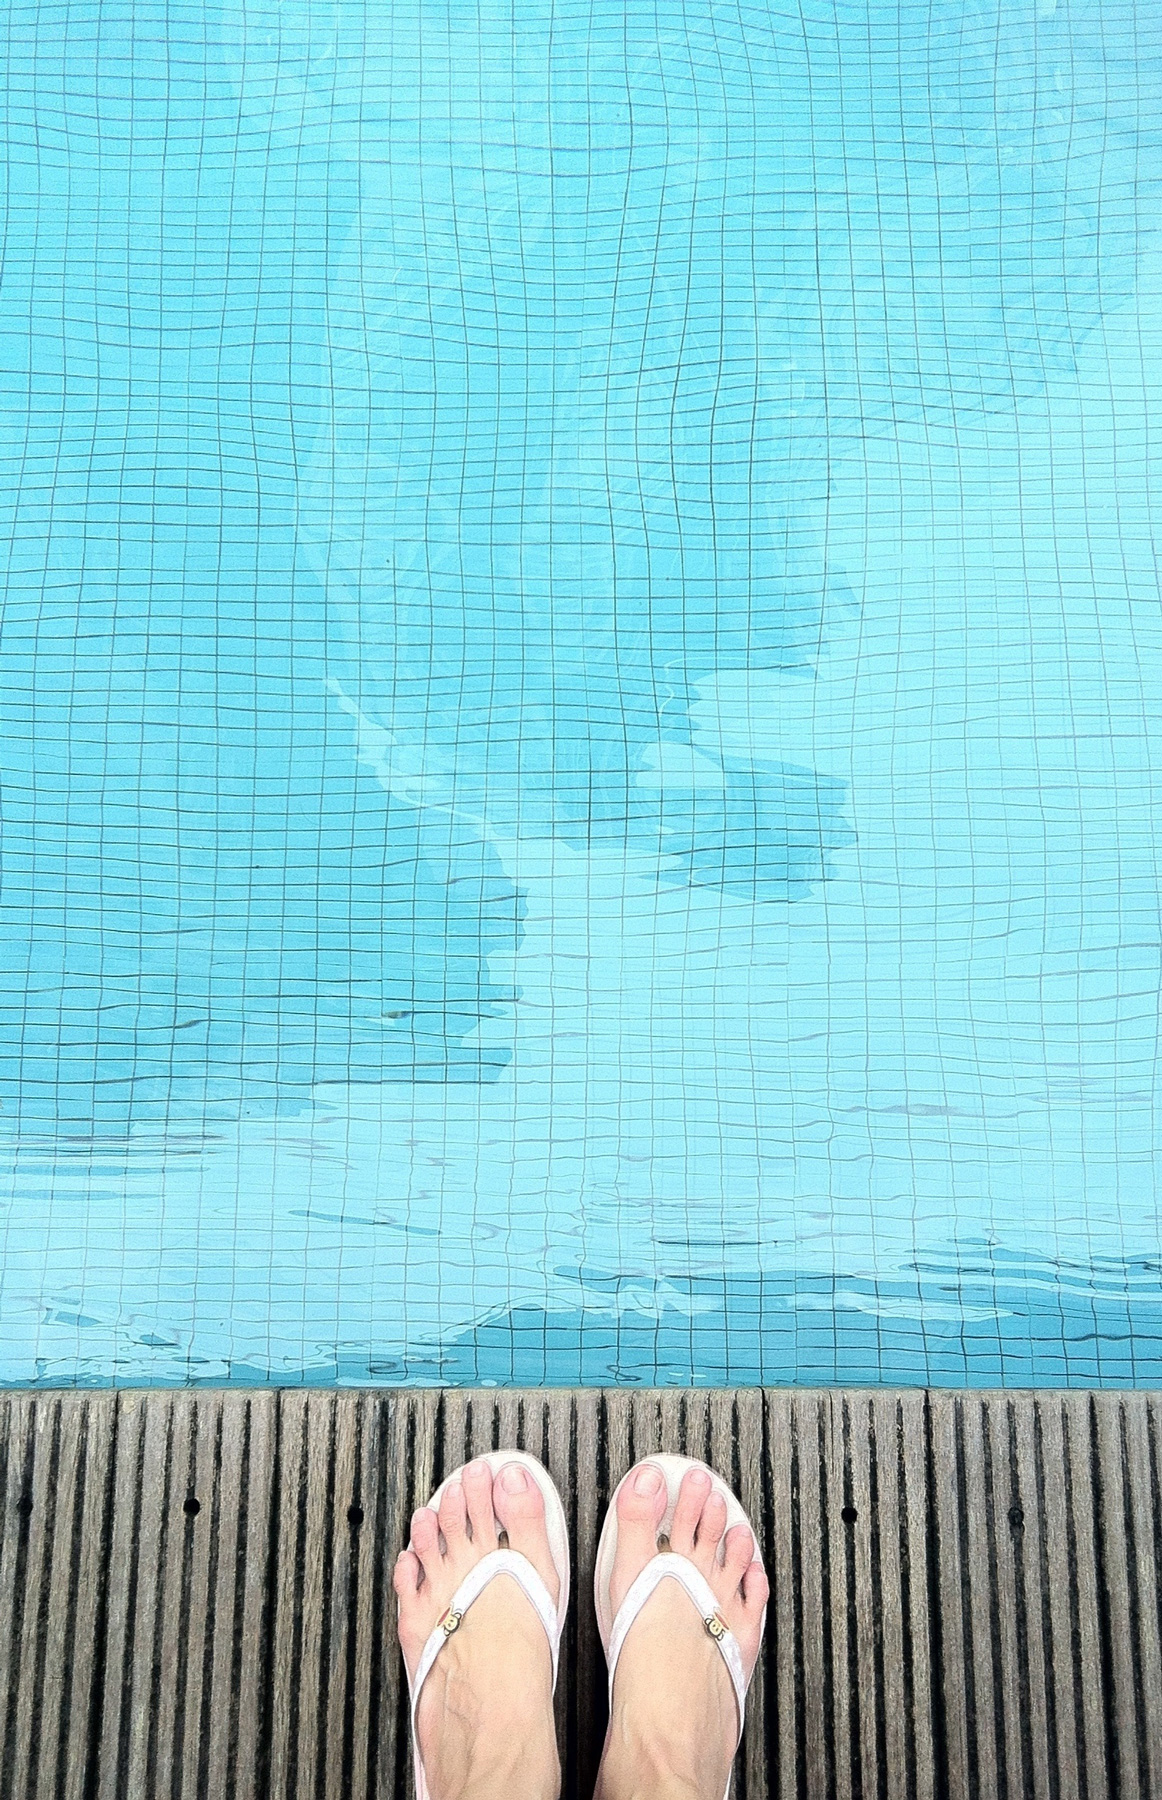 Großer Pool swimming pools are even grosser than you thought simple